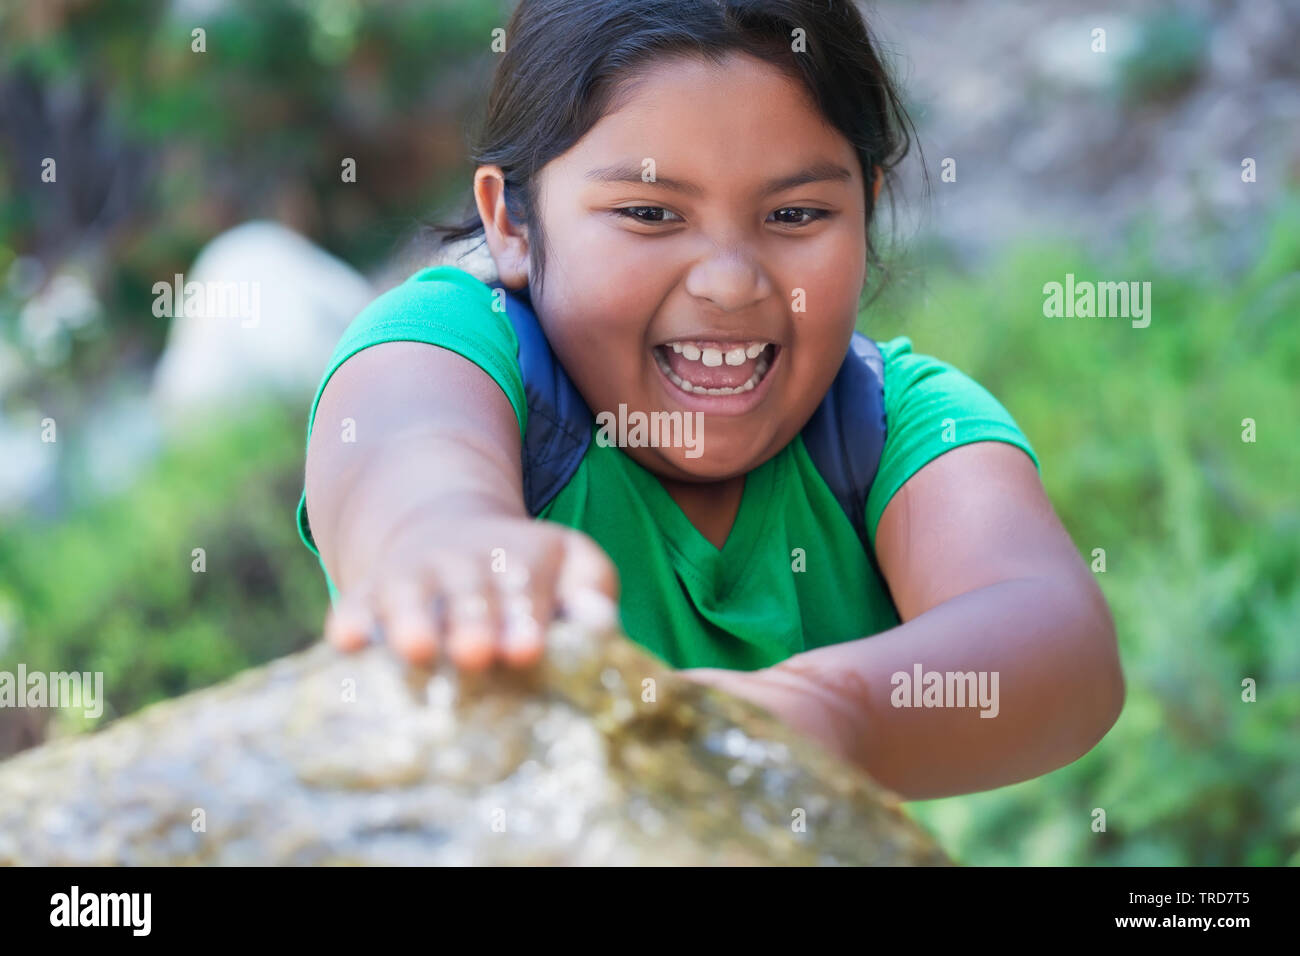 Pre teen student with backpack blocking a water fountain with her hands and having a great time playing after school. - Stock Image